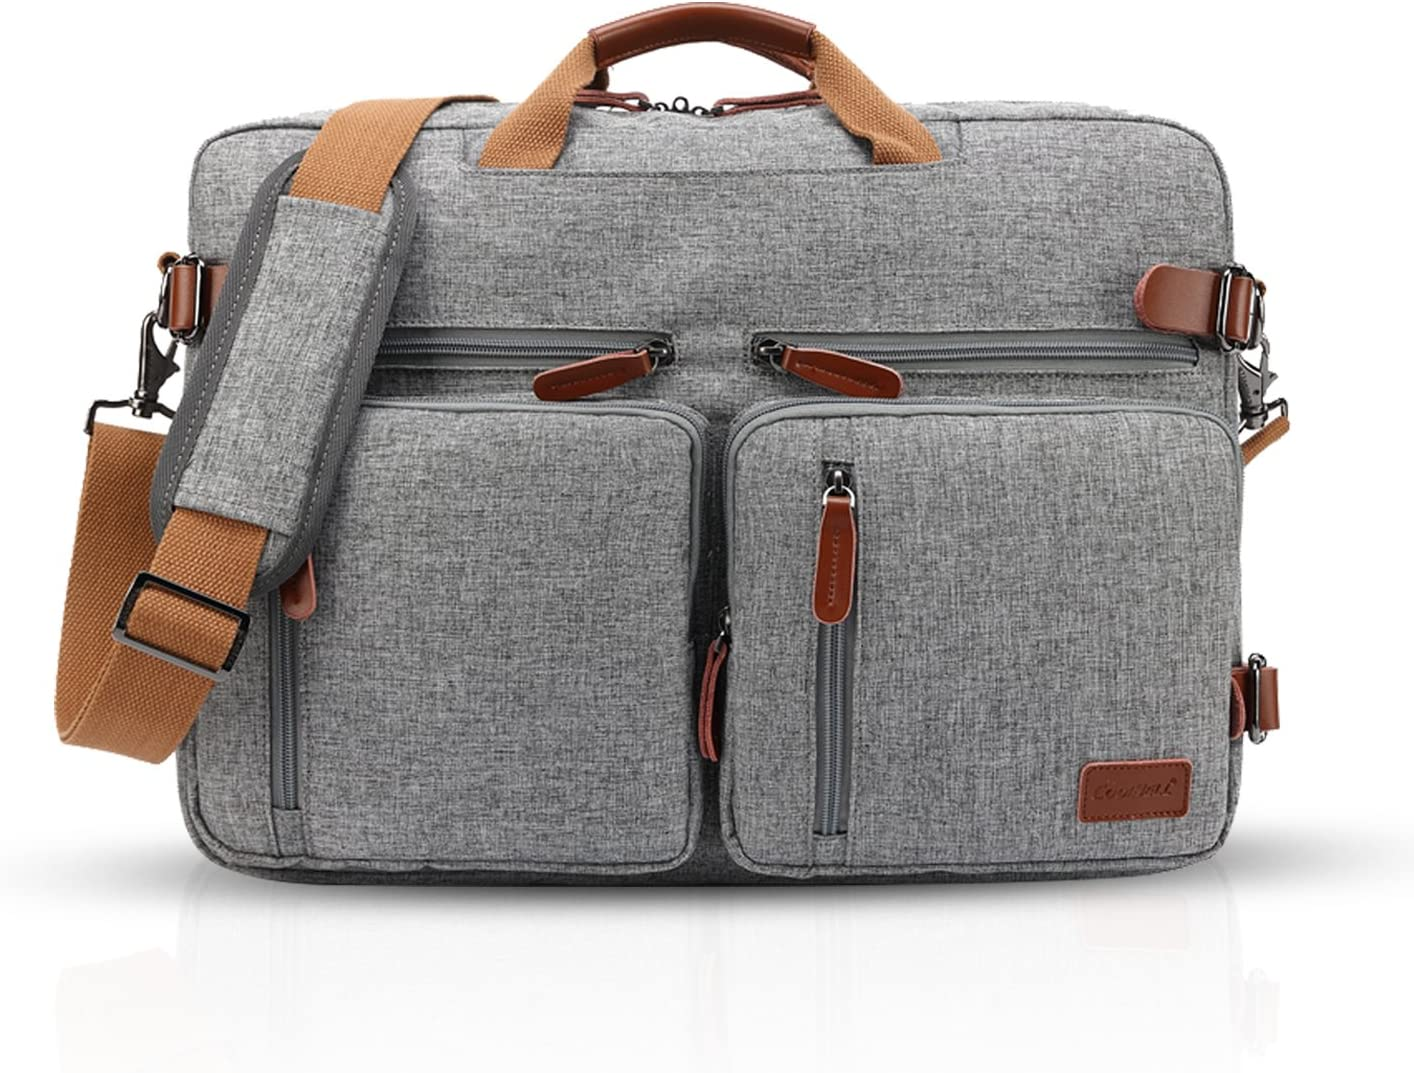 FANDARE Vintage Messenger Bag Sac Bandouli/ère Ordinateur Portable 14.6 Pouces Laptop Briefcase Sacs Port/és Travail Ecole Cartable Crossbody Bag Toile Gris